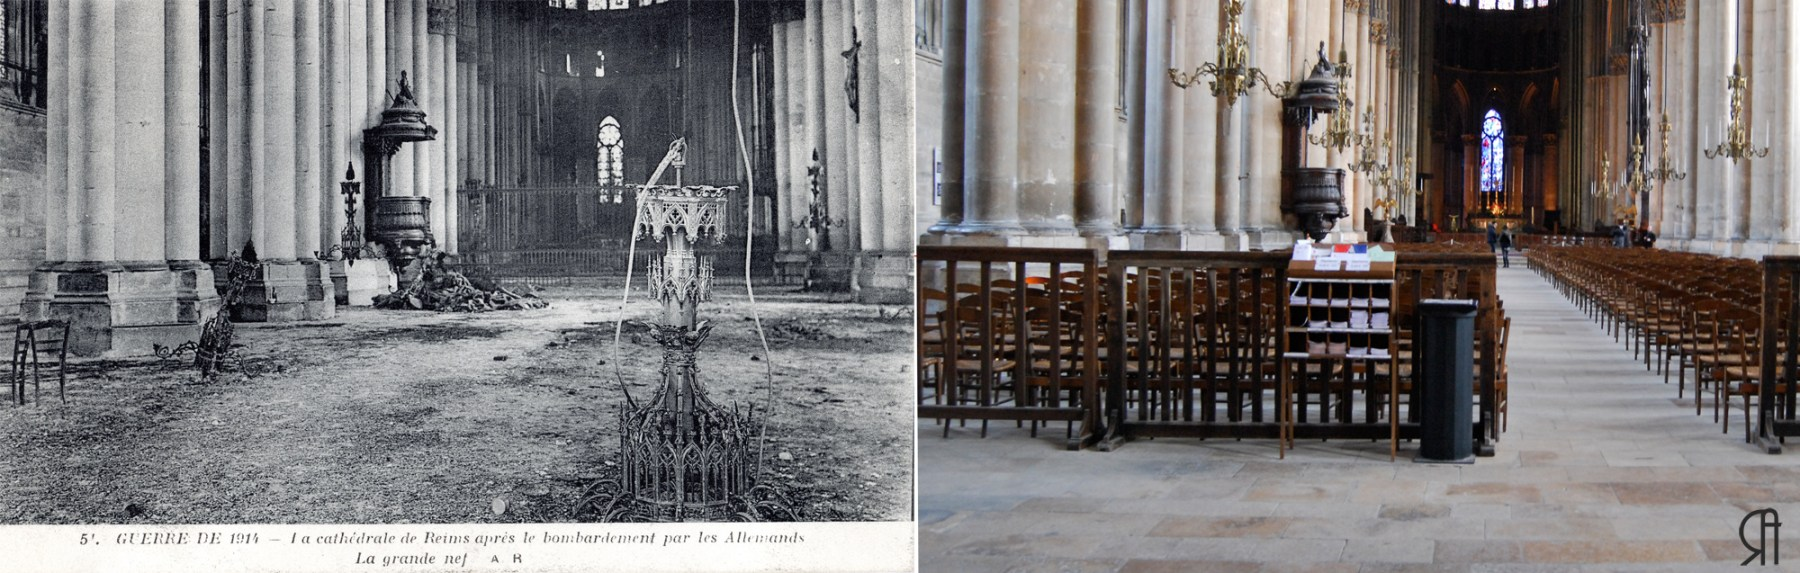 10-191-interieur-cathedrale